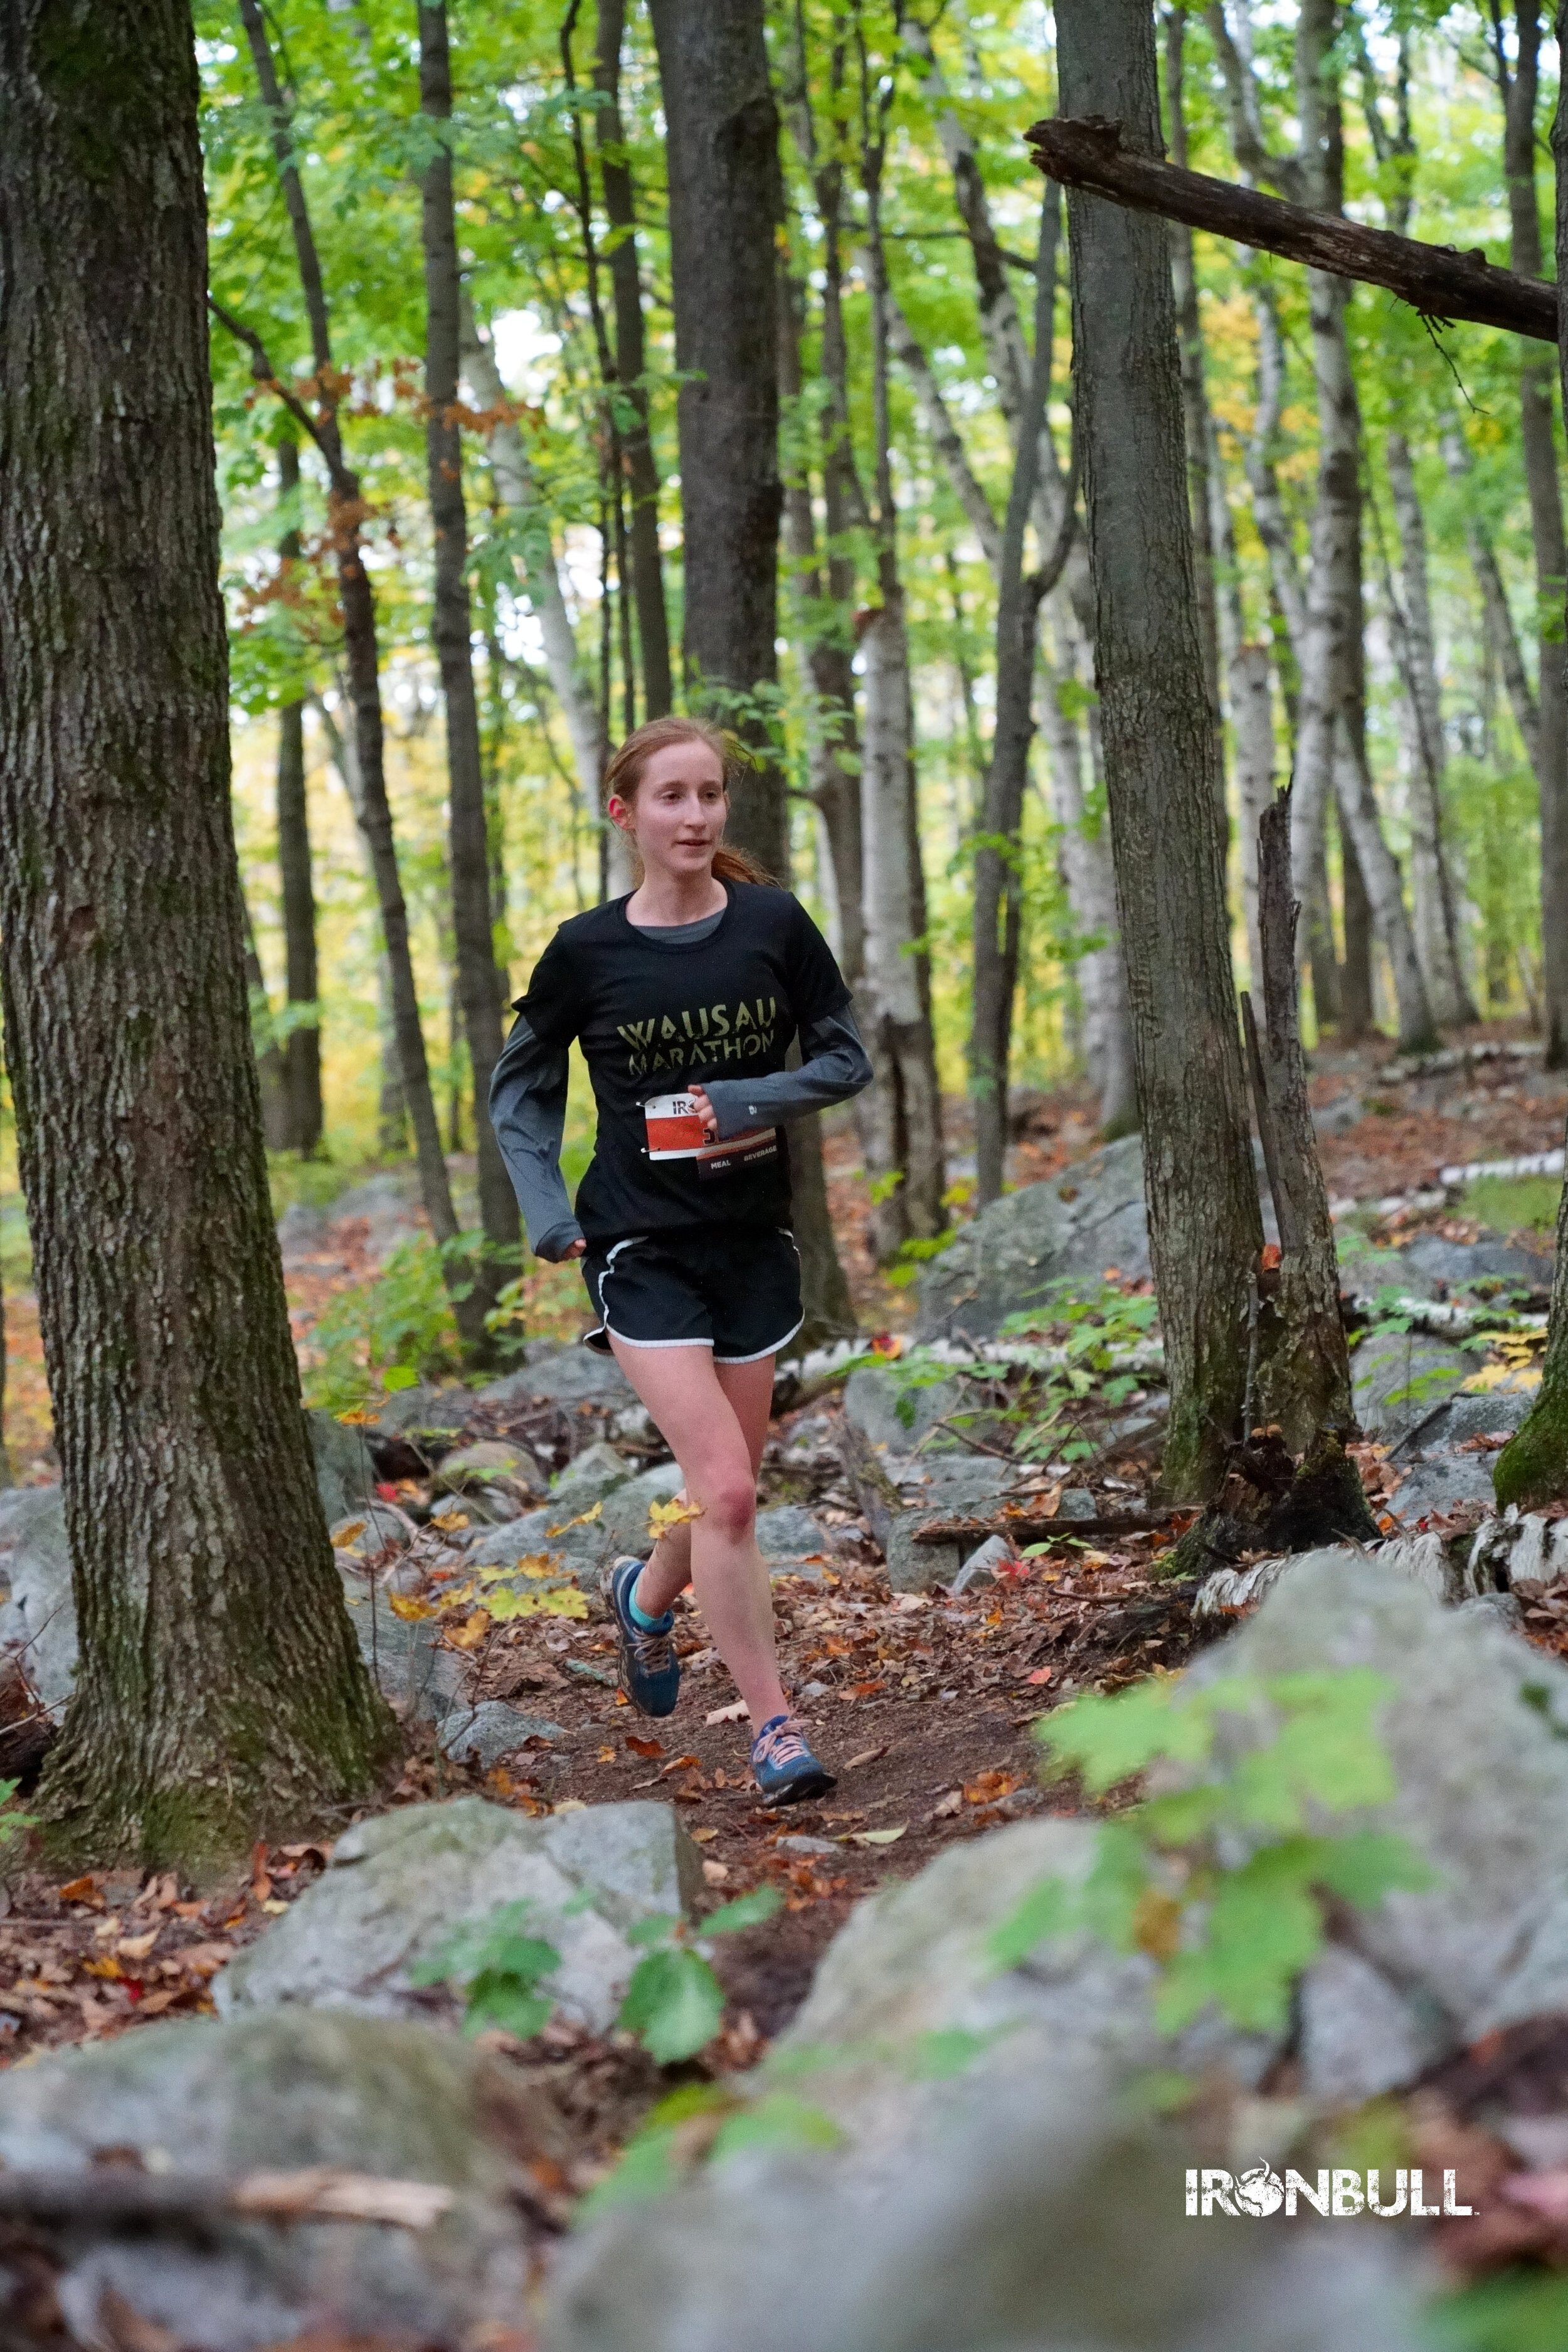 """The volunteers were friendly and helpful, and the course was impressively well marked. Overall, it was a wonderful event which I would recommend to anyone who is up for an adventure."" - Bailey Boudreau, women's 50k champion"